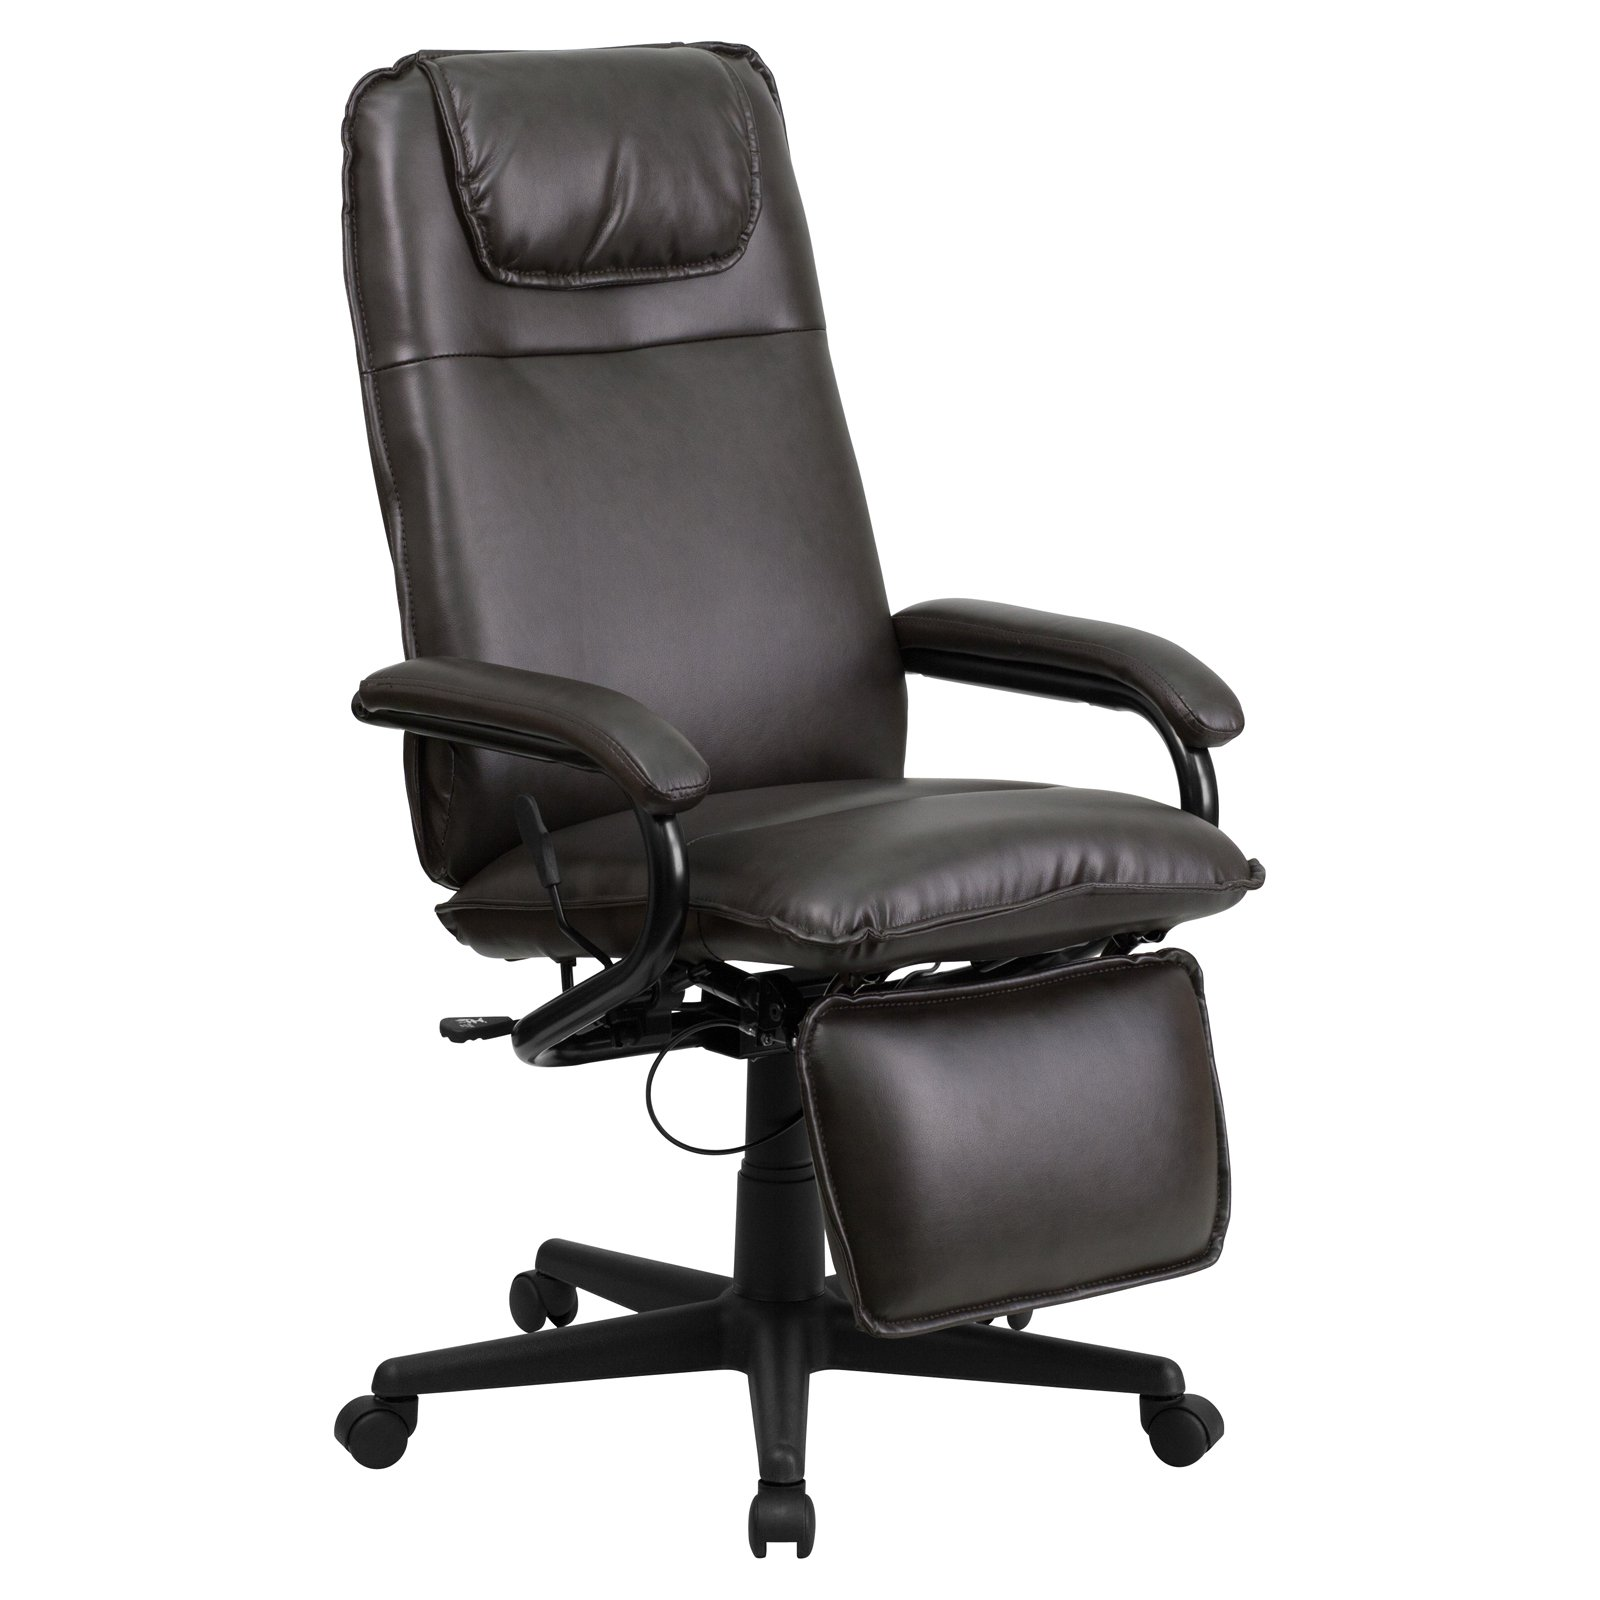 Flash Furniture High Back Leather Executive Reclining Swivel Office Chair - Walmart.com  sc 1 st  Walmart & Flash Furniture High Back Leather Executive Reclining Swivel ... islam-shia.org